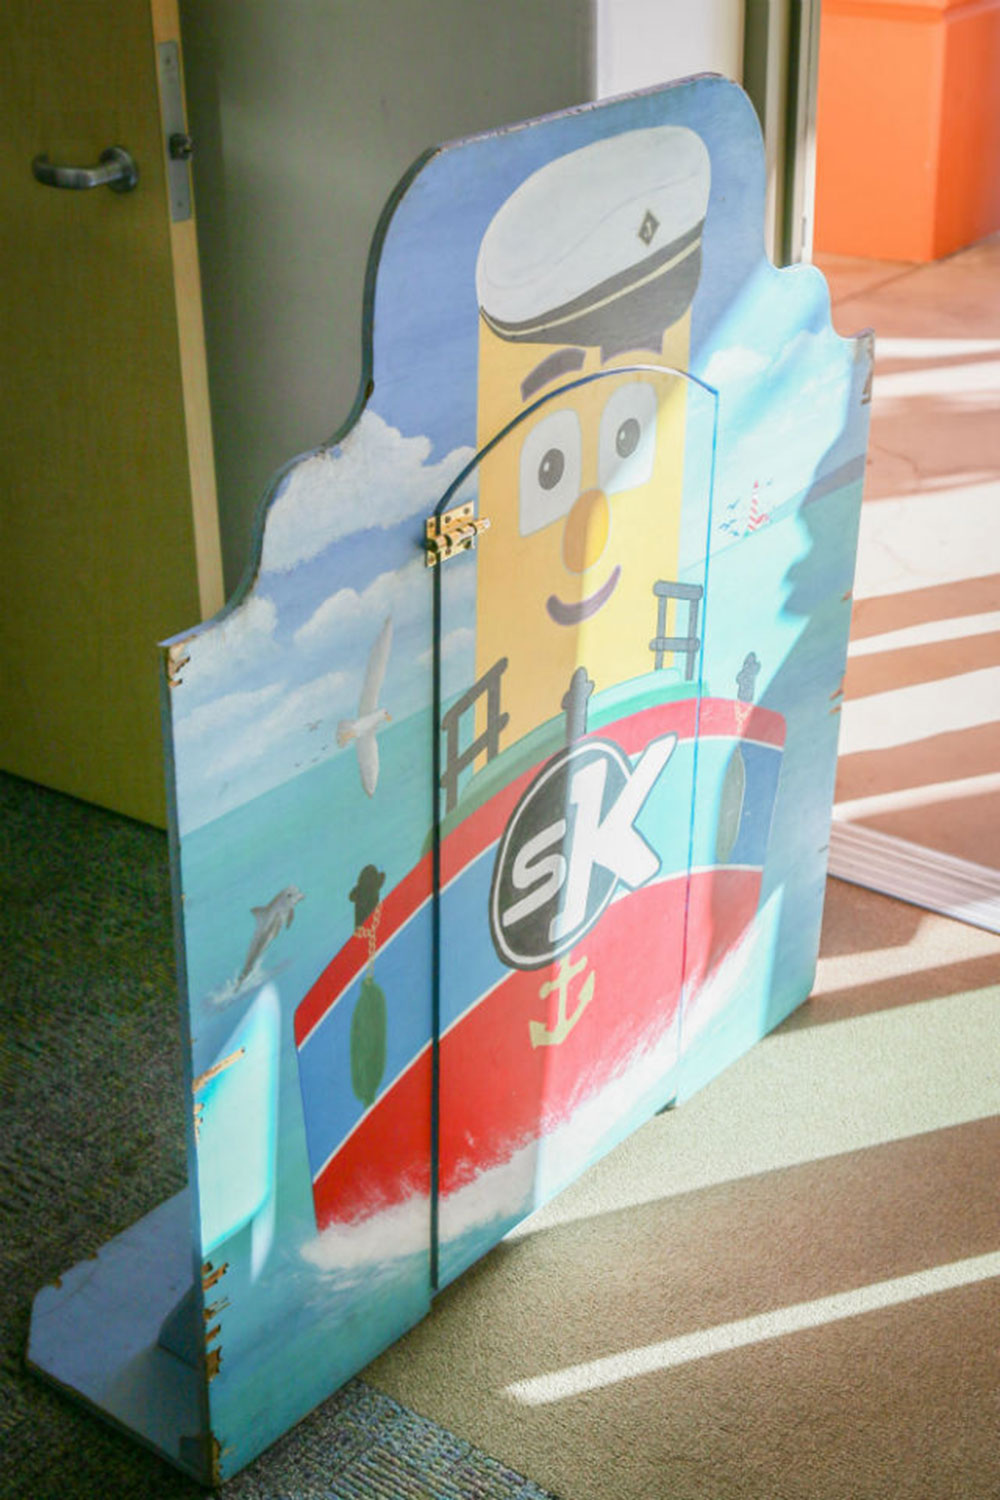 Preschool size door